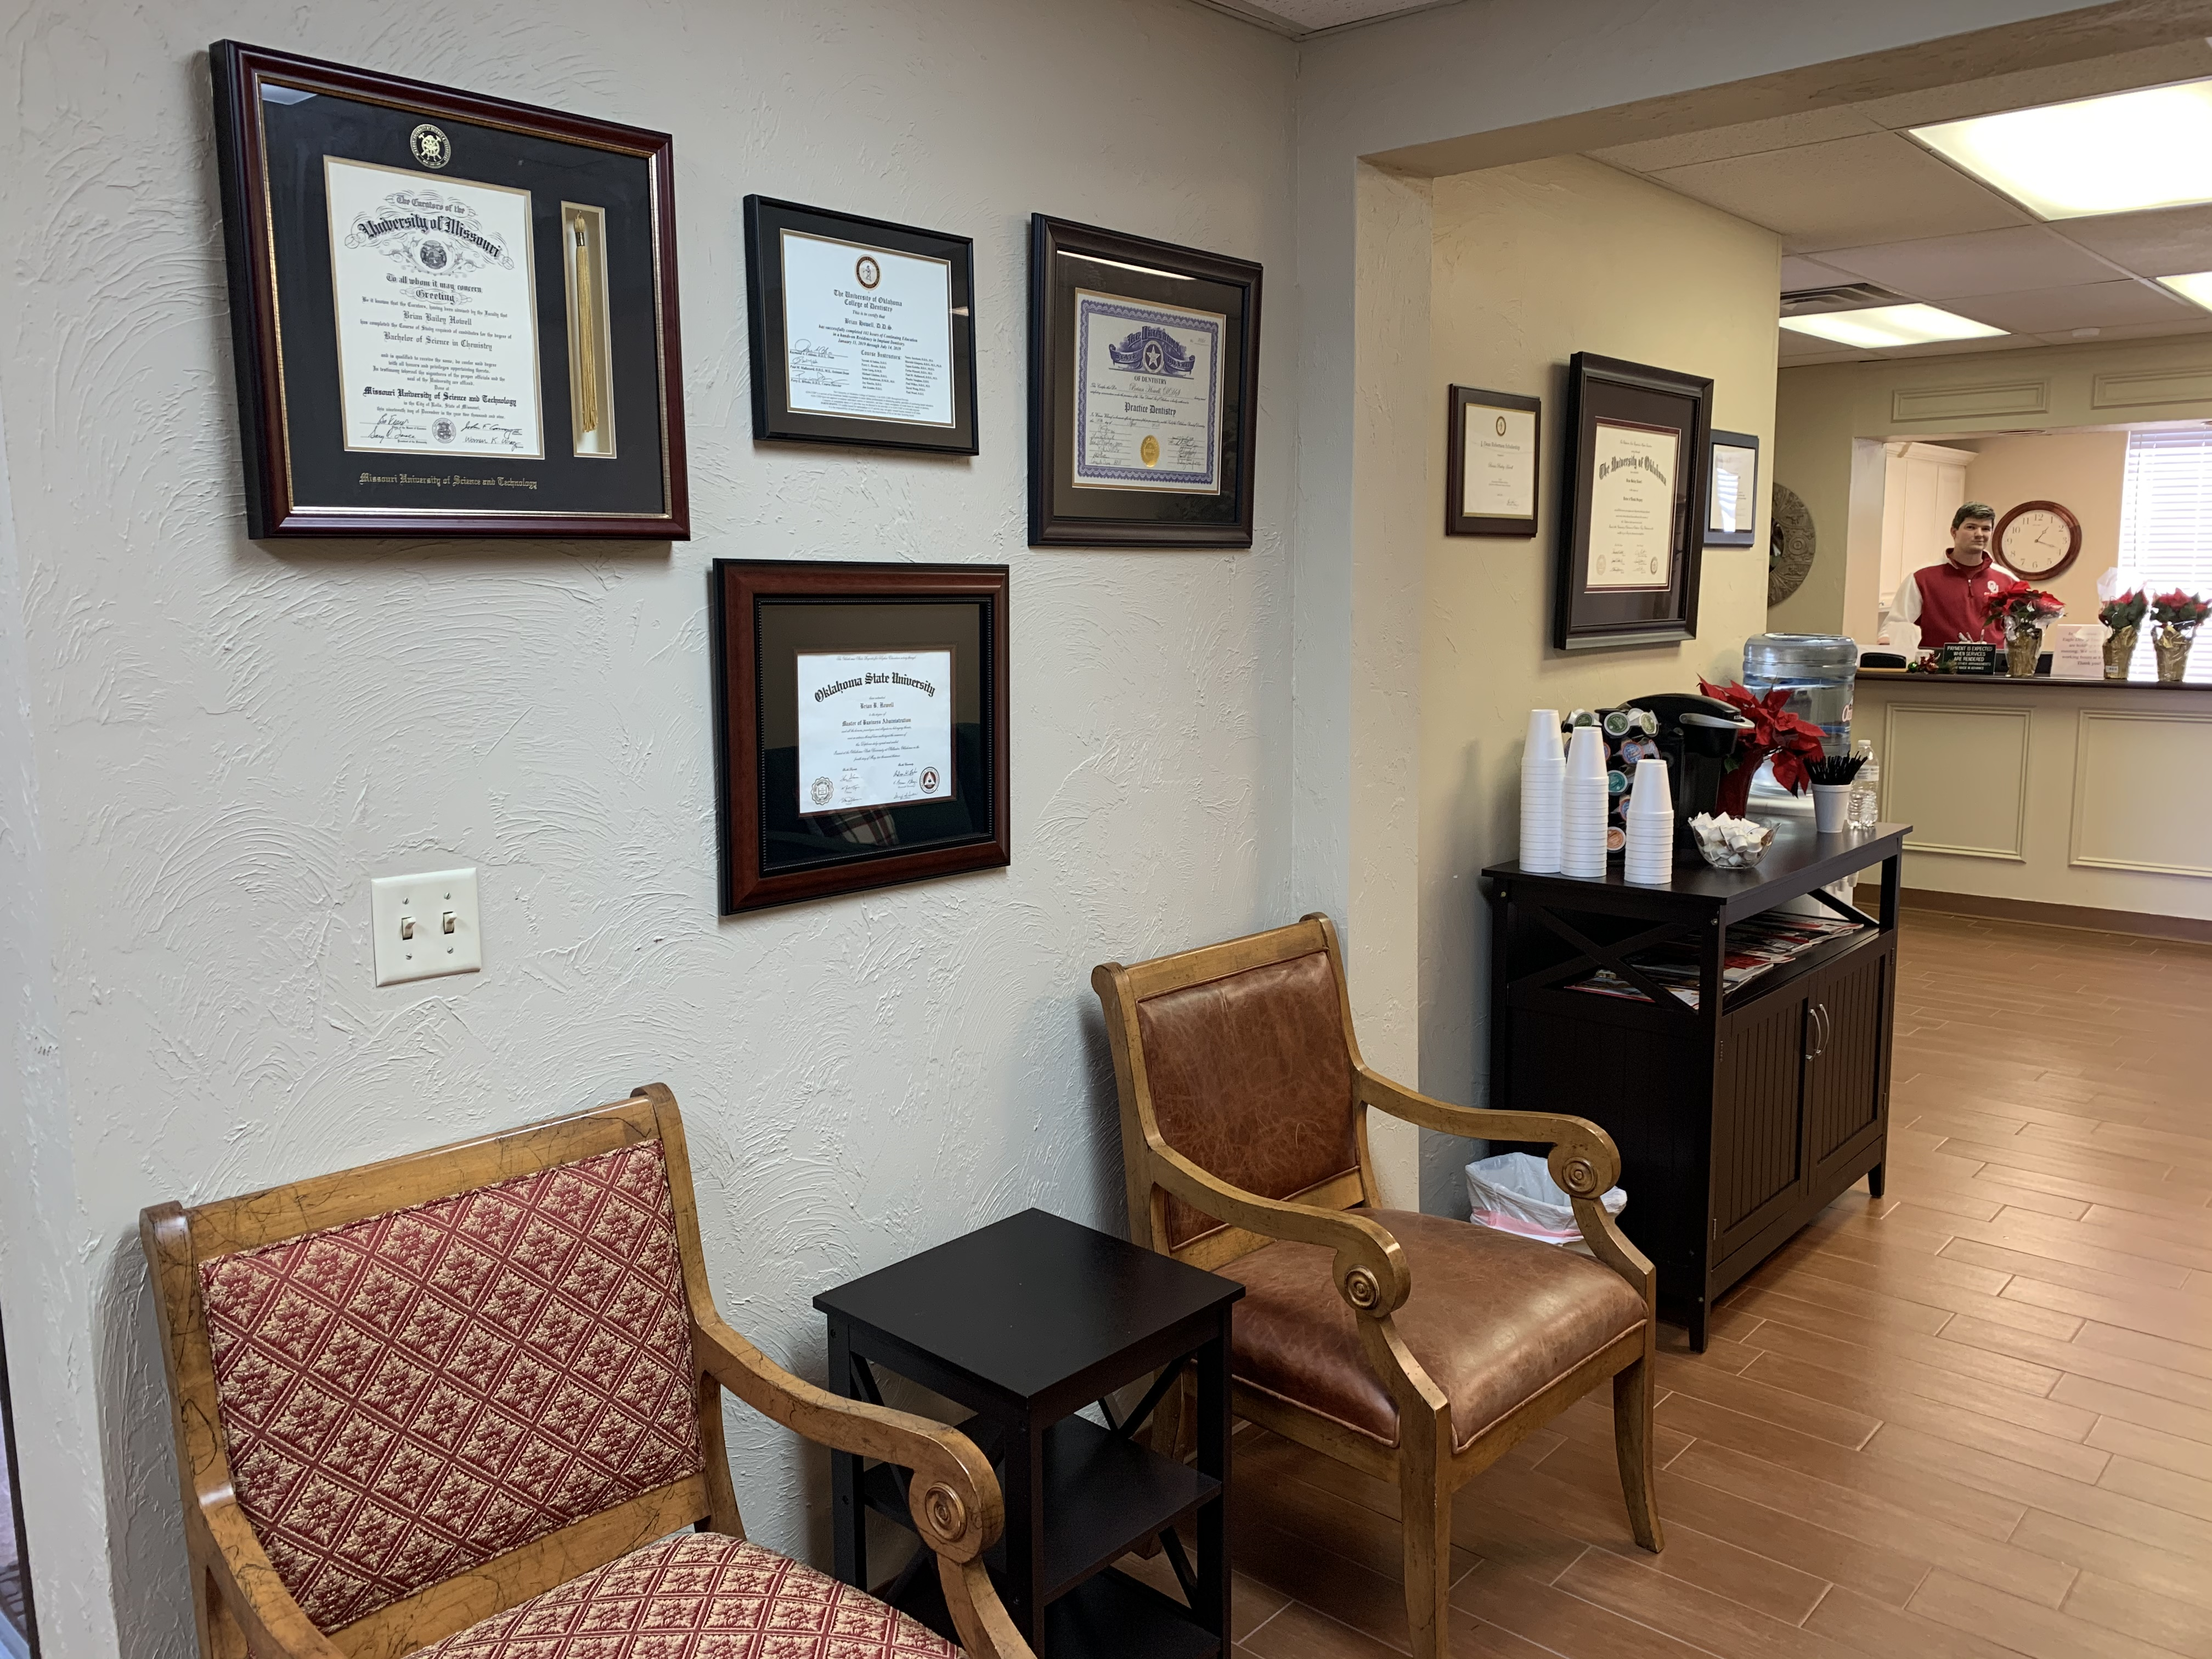 Our team at Eagle Dental in Edmond takes pride in helping patients